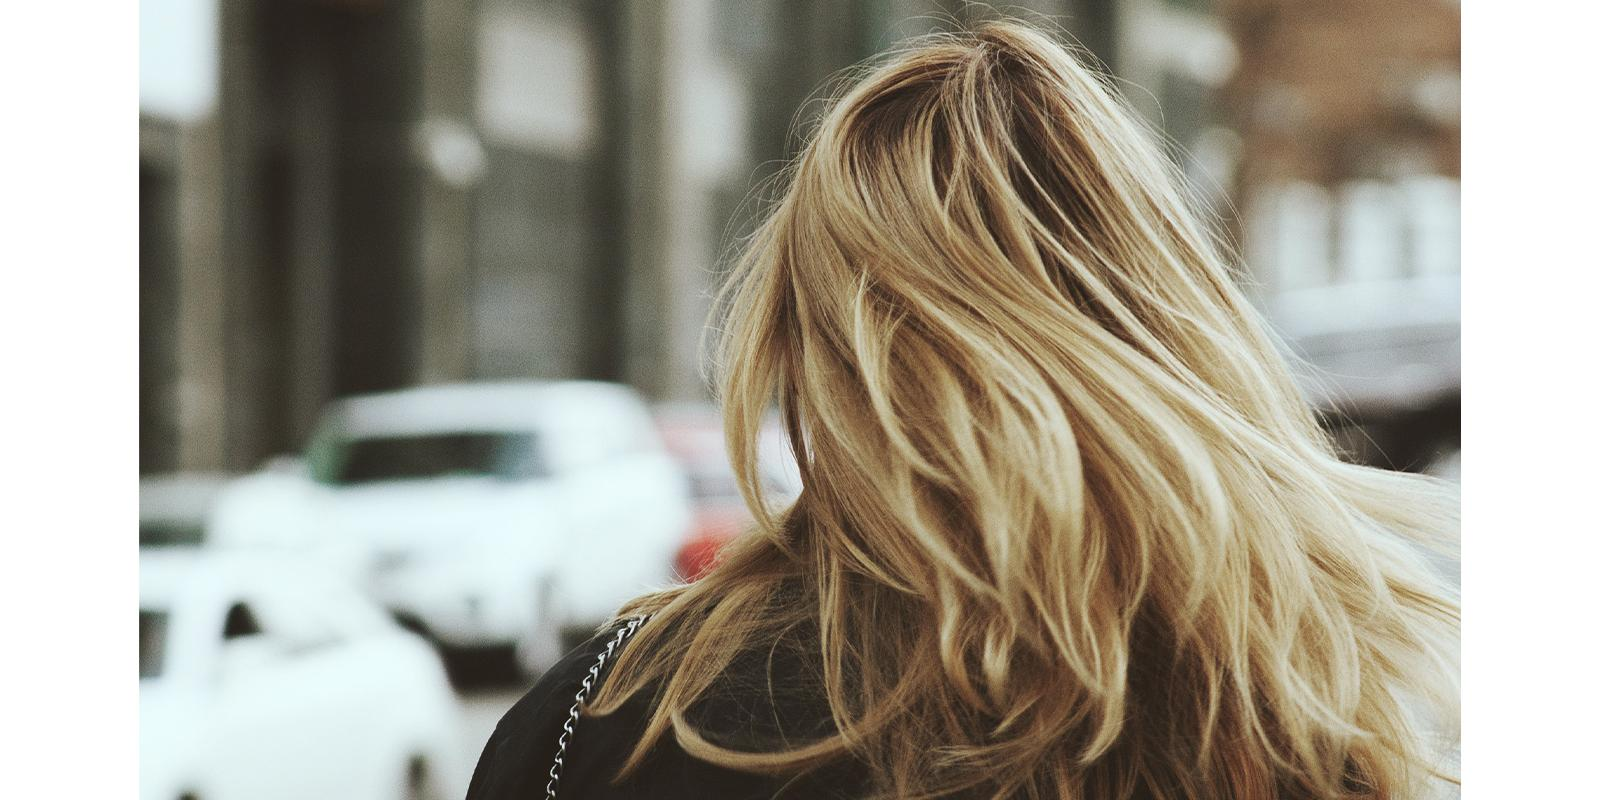 Why Is Blonde Hair Harder to Color and Maintain?